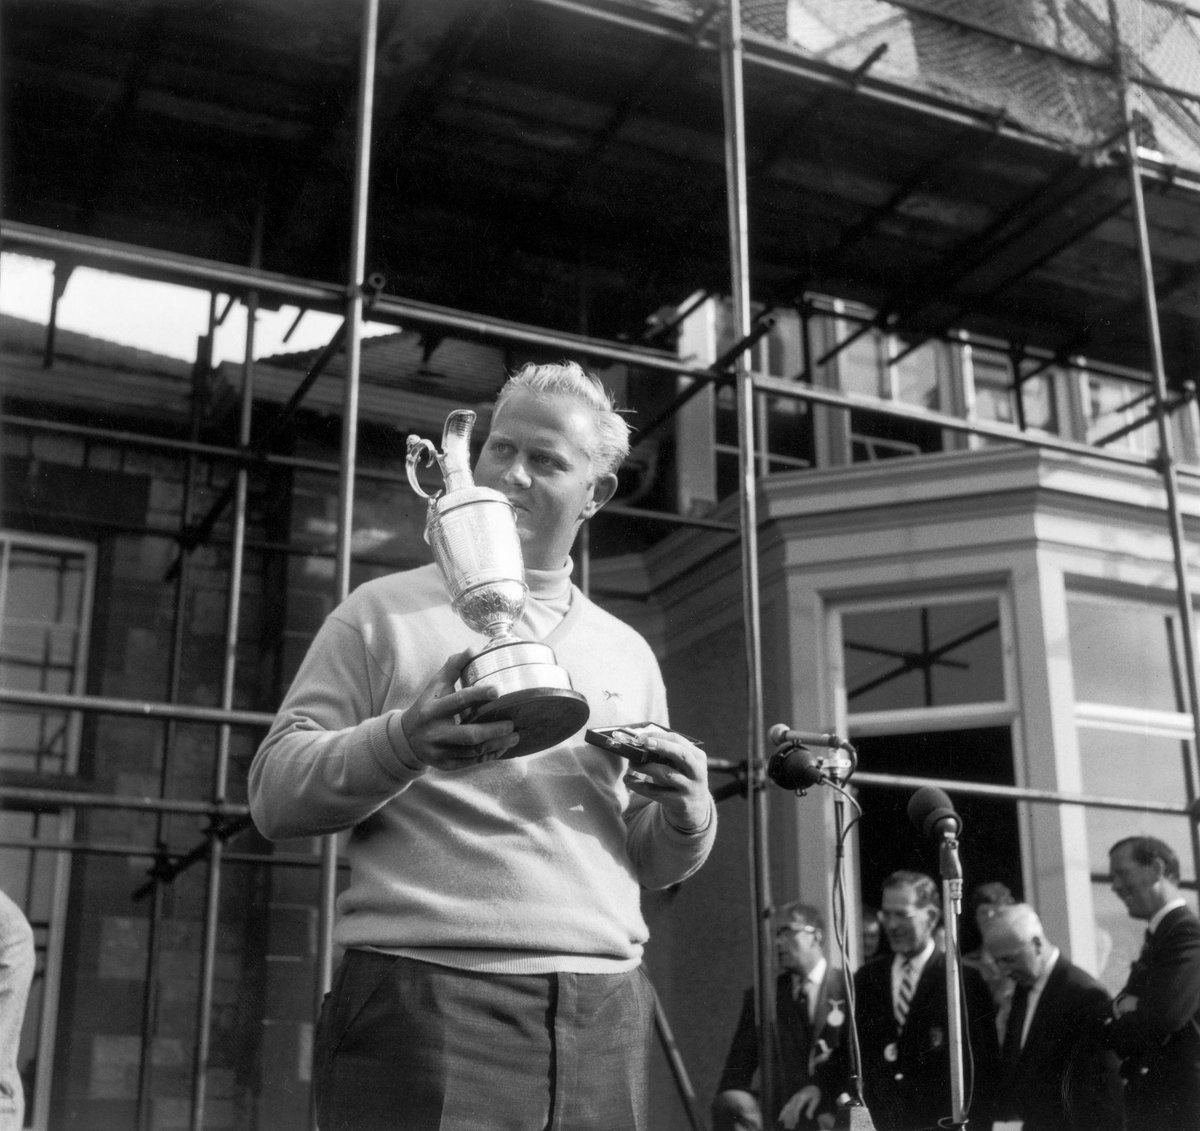 Jack Nicklaus' results at #TheOpen from 1963-1982: 3rd 2nd T12 1st 🏆 2nd T2 T6 1st 🏆 T5 2nd 4th 3rd T3 T2 2nd 1st 🏆 T2 T4  #LiveUnderPar